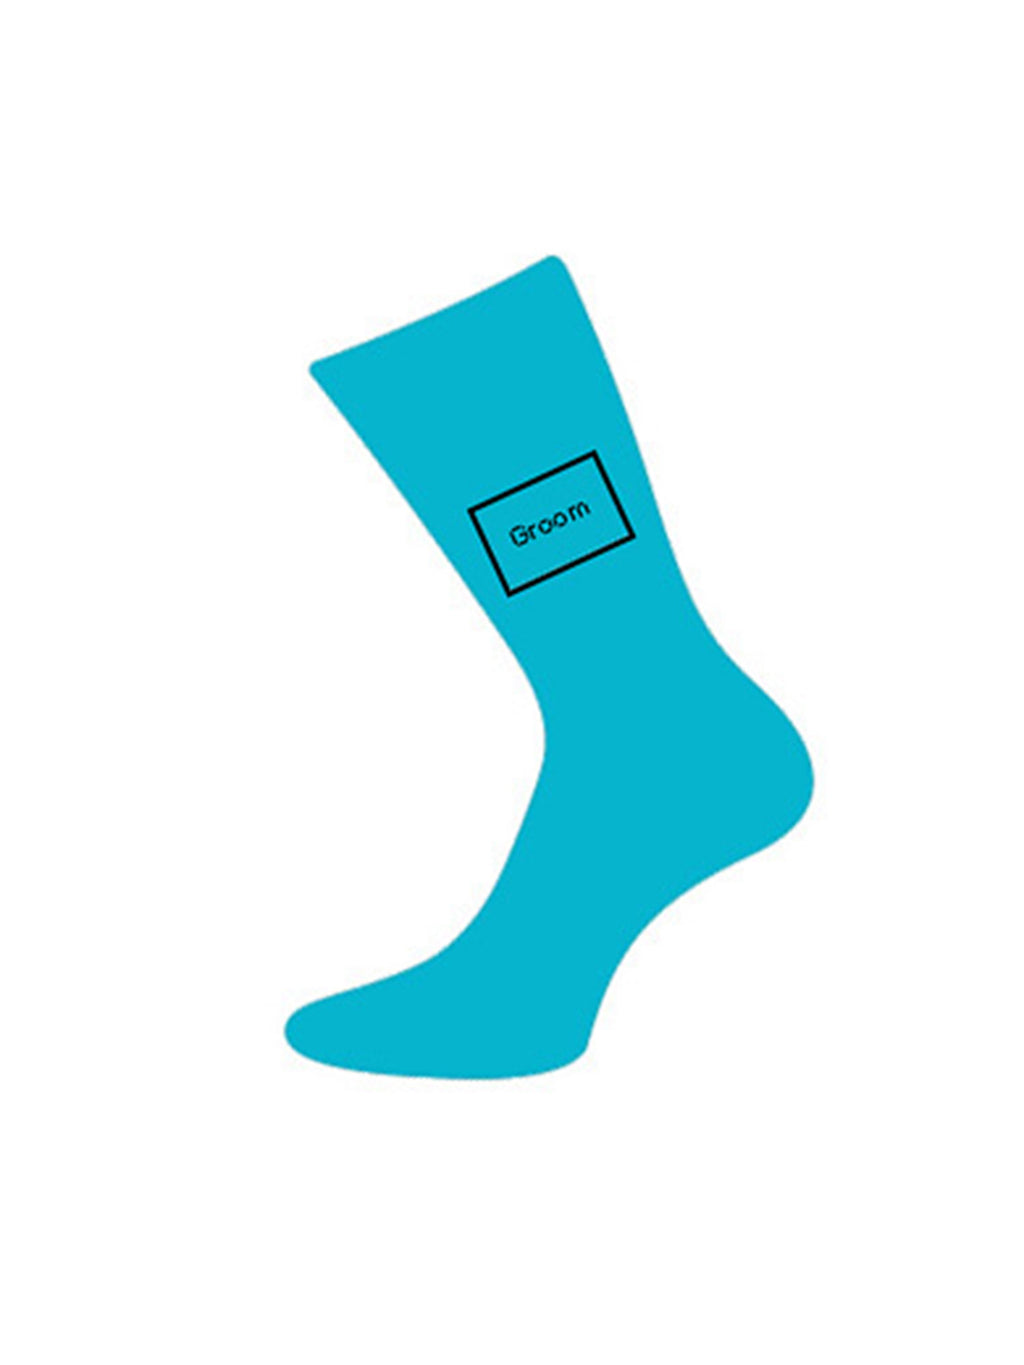 wedding sock for groom turquoise